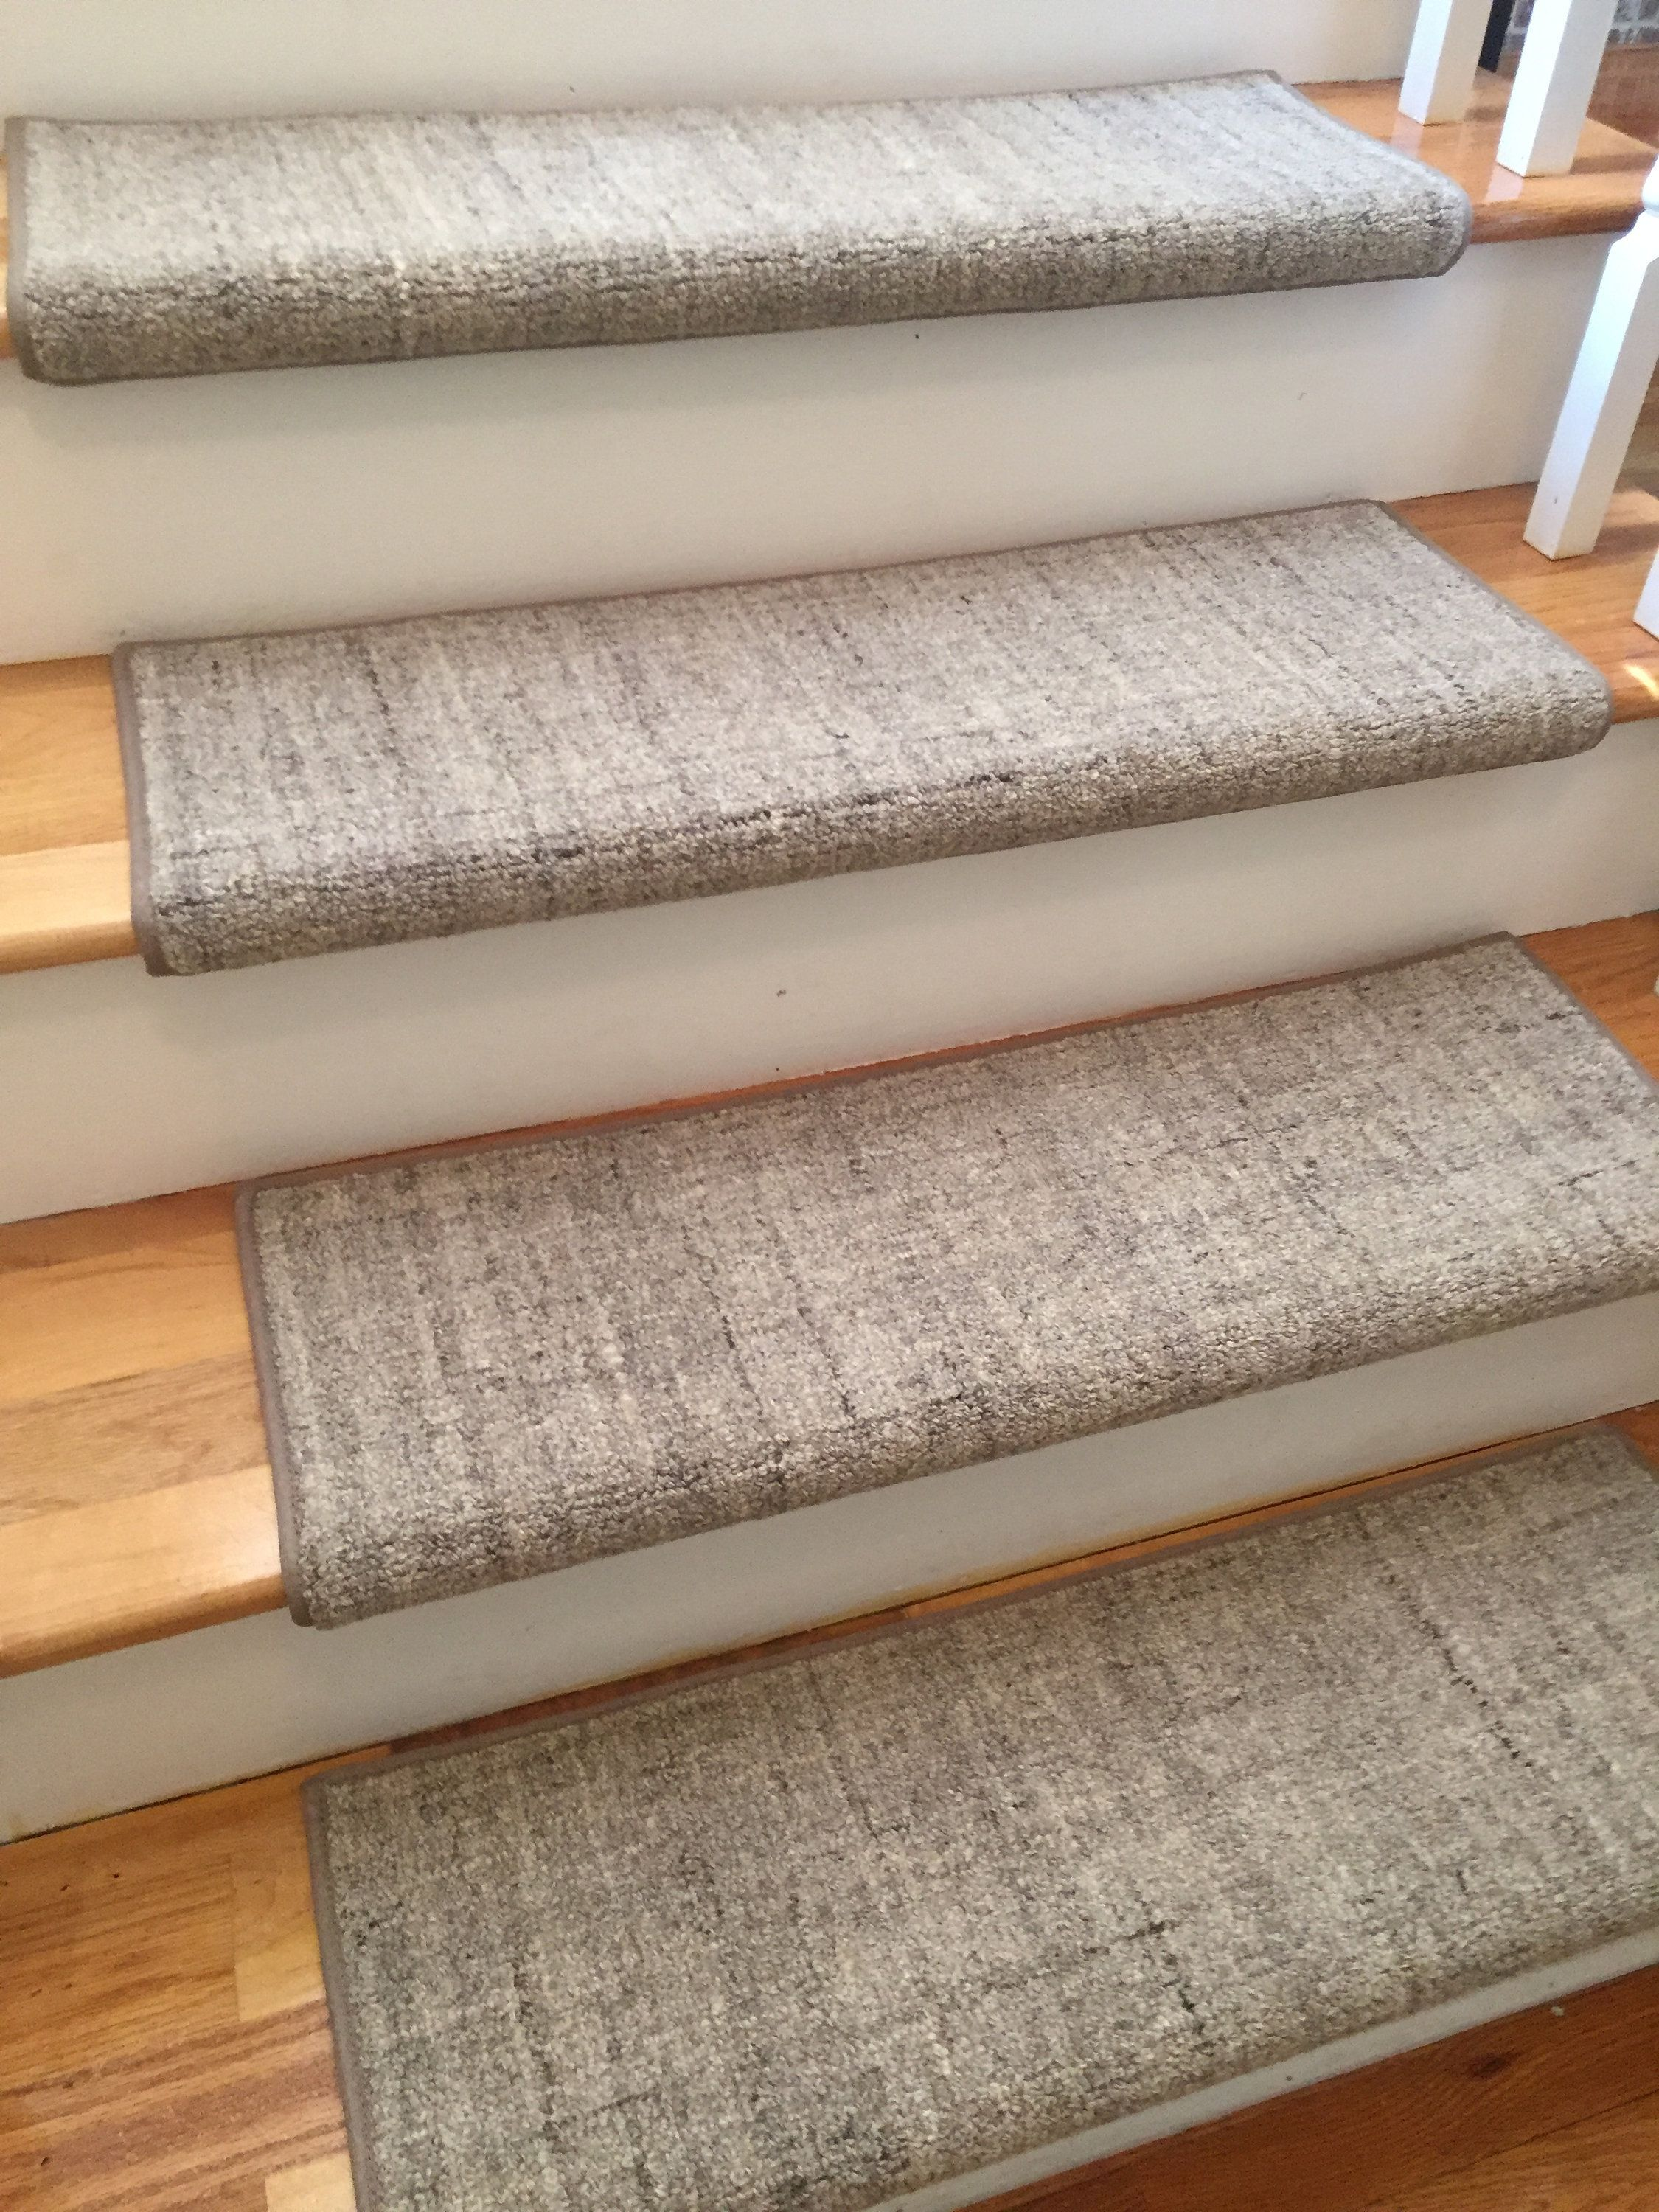 Terrain Hand Loomed 100 Wool Multiple Colors True Bullnose Padded Carpet Stair Tread For Safety Comfort D Carpet Treads Carpet Stair Treads Carpet Runner